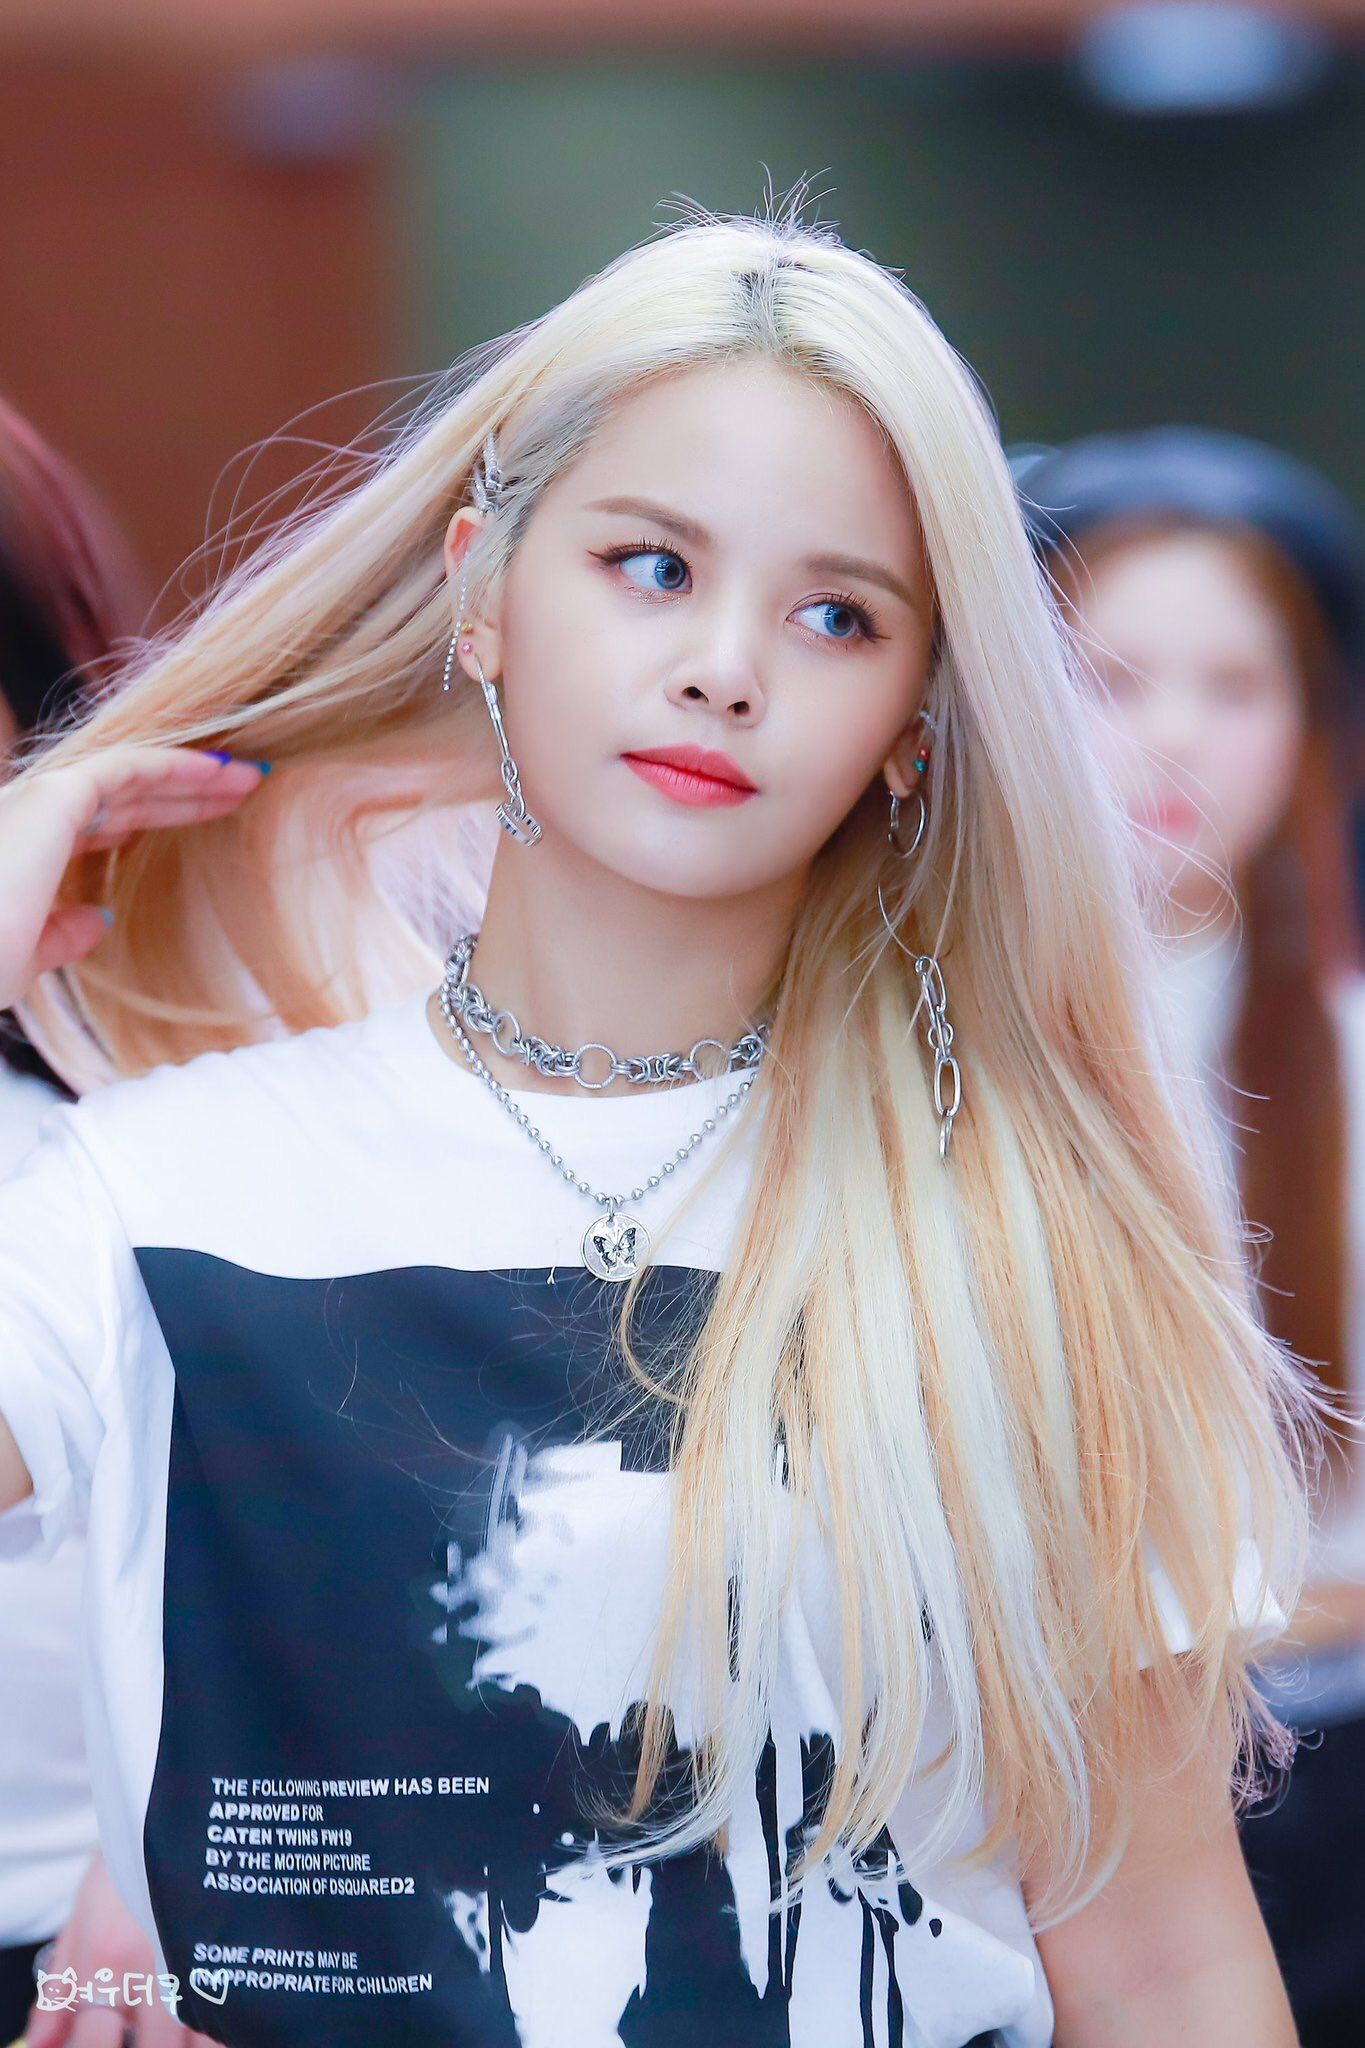 Pin By M I L A On Clc Sorn Clc Kpop Girls Cute Girl Poses